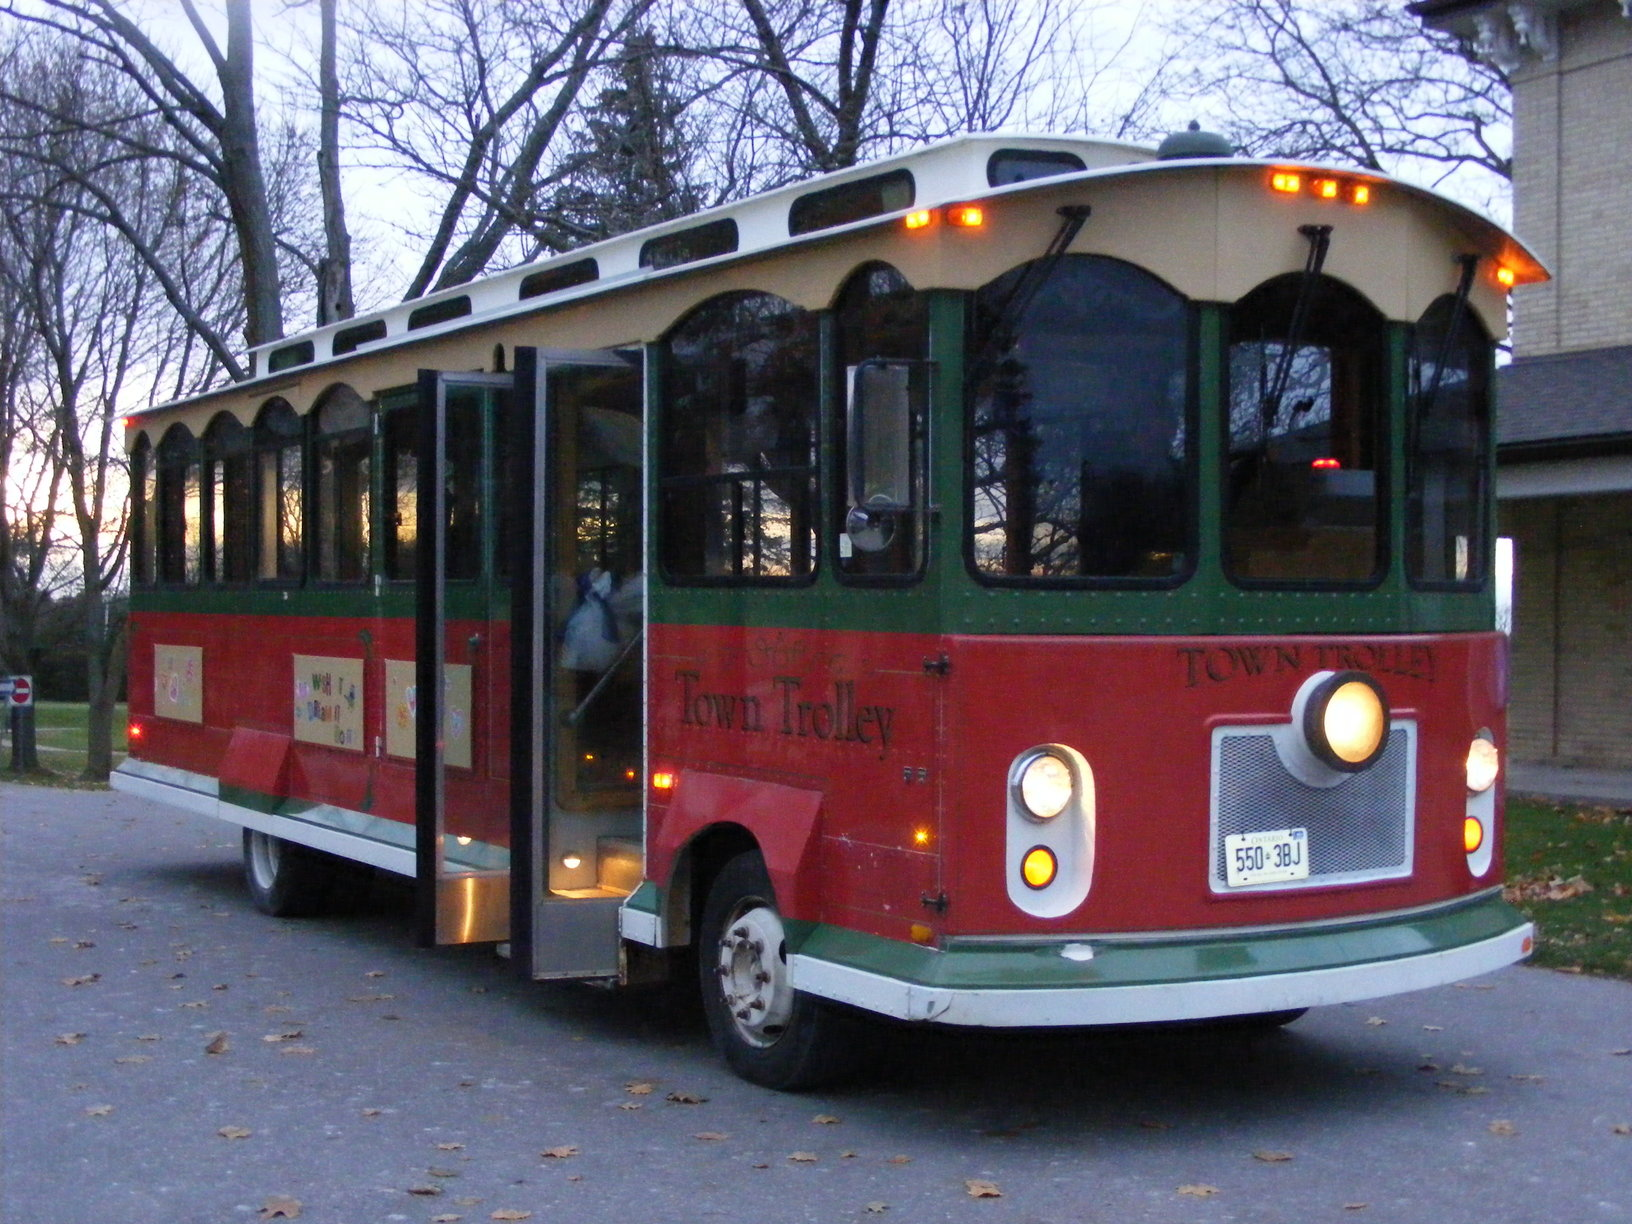 Trolley car a symbol of Kawartha Lakes community spirit: Bryant